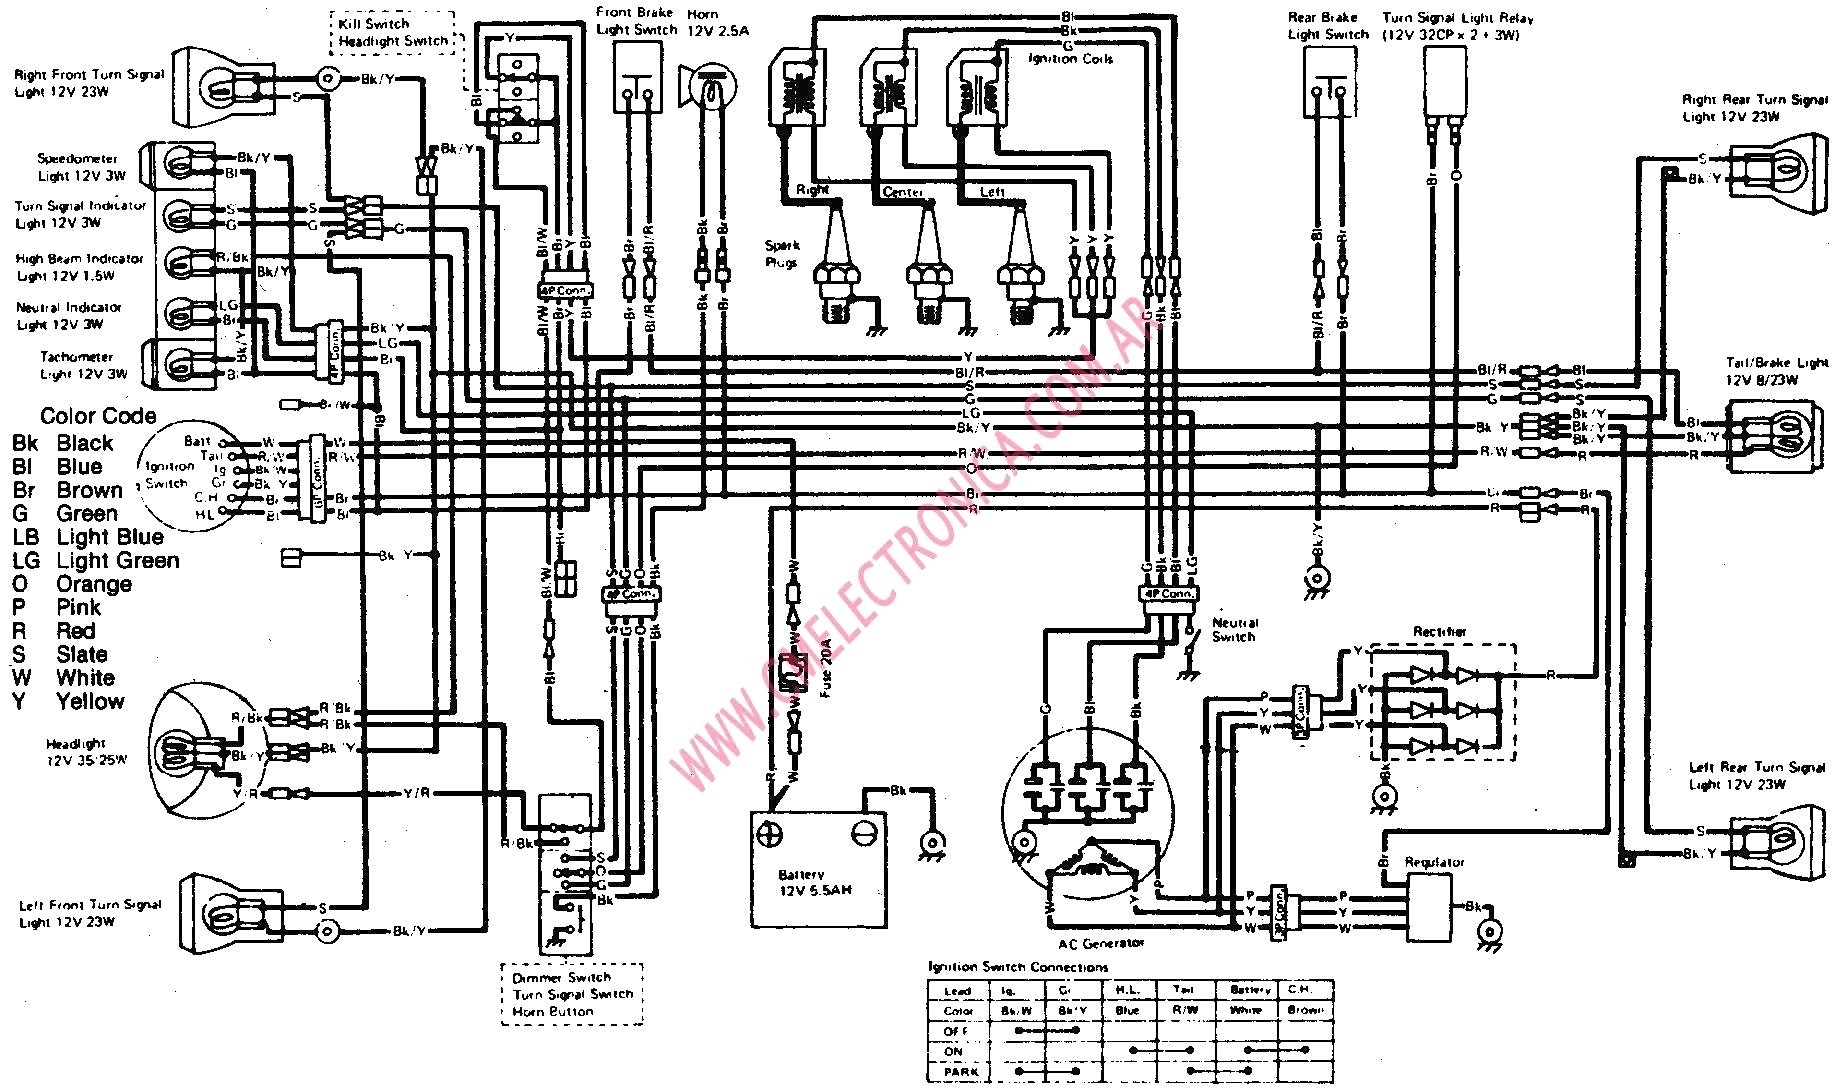 2012 Ninja 650 Wiring Diagram | Wiring Diagram Database